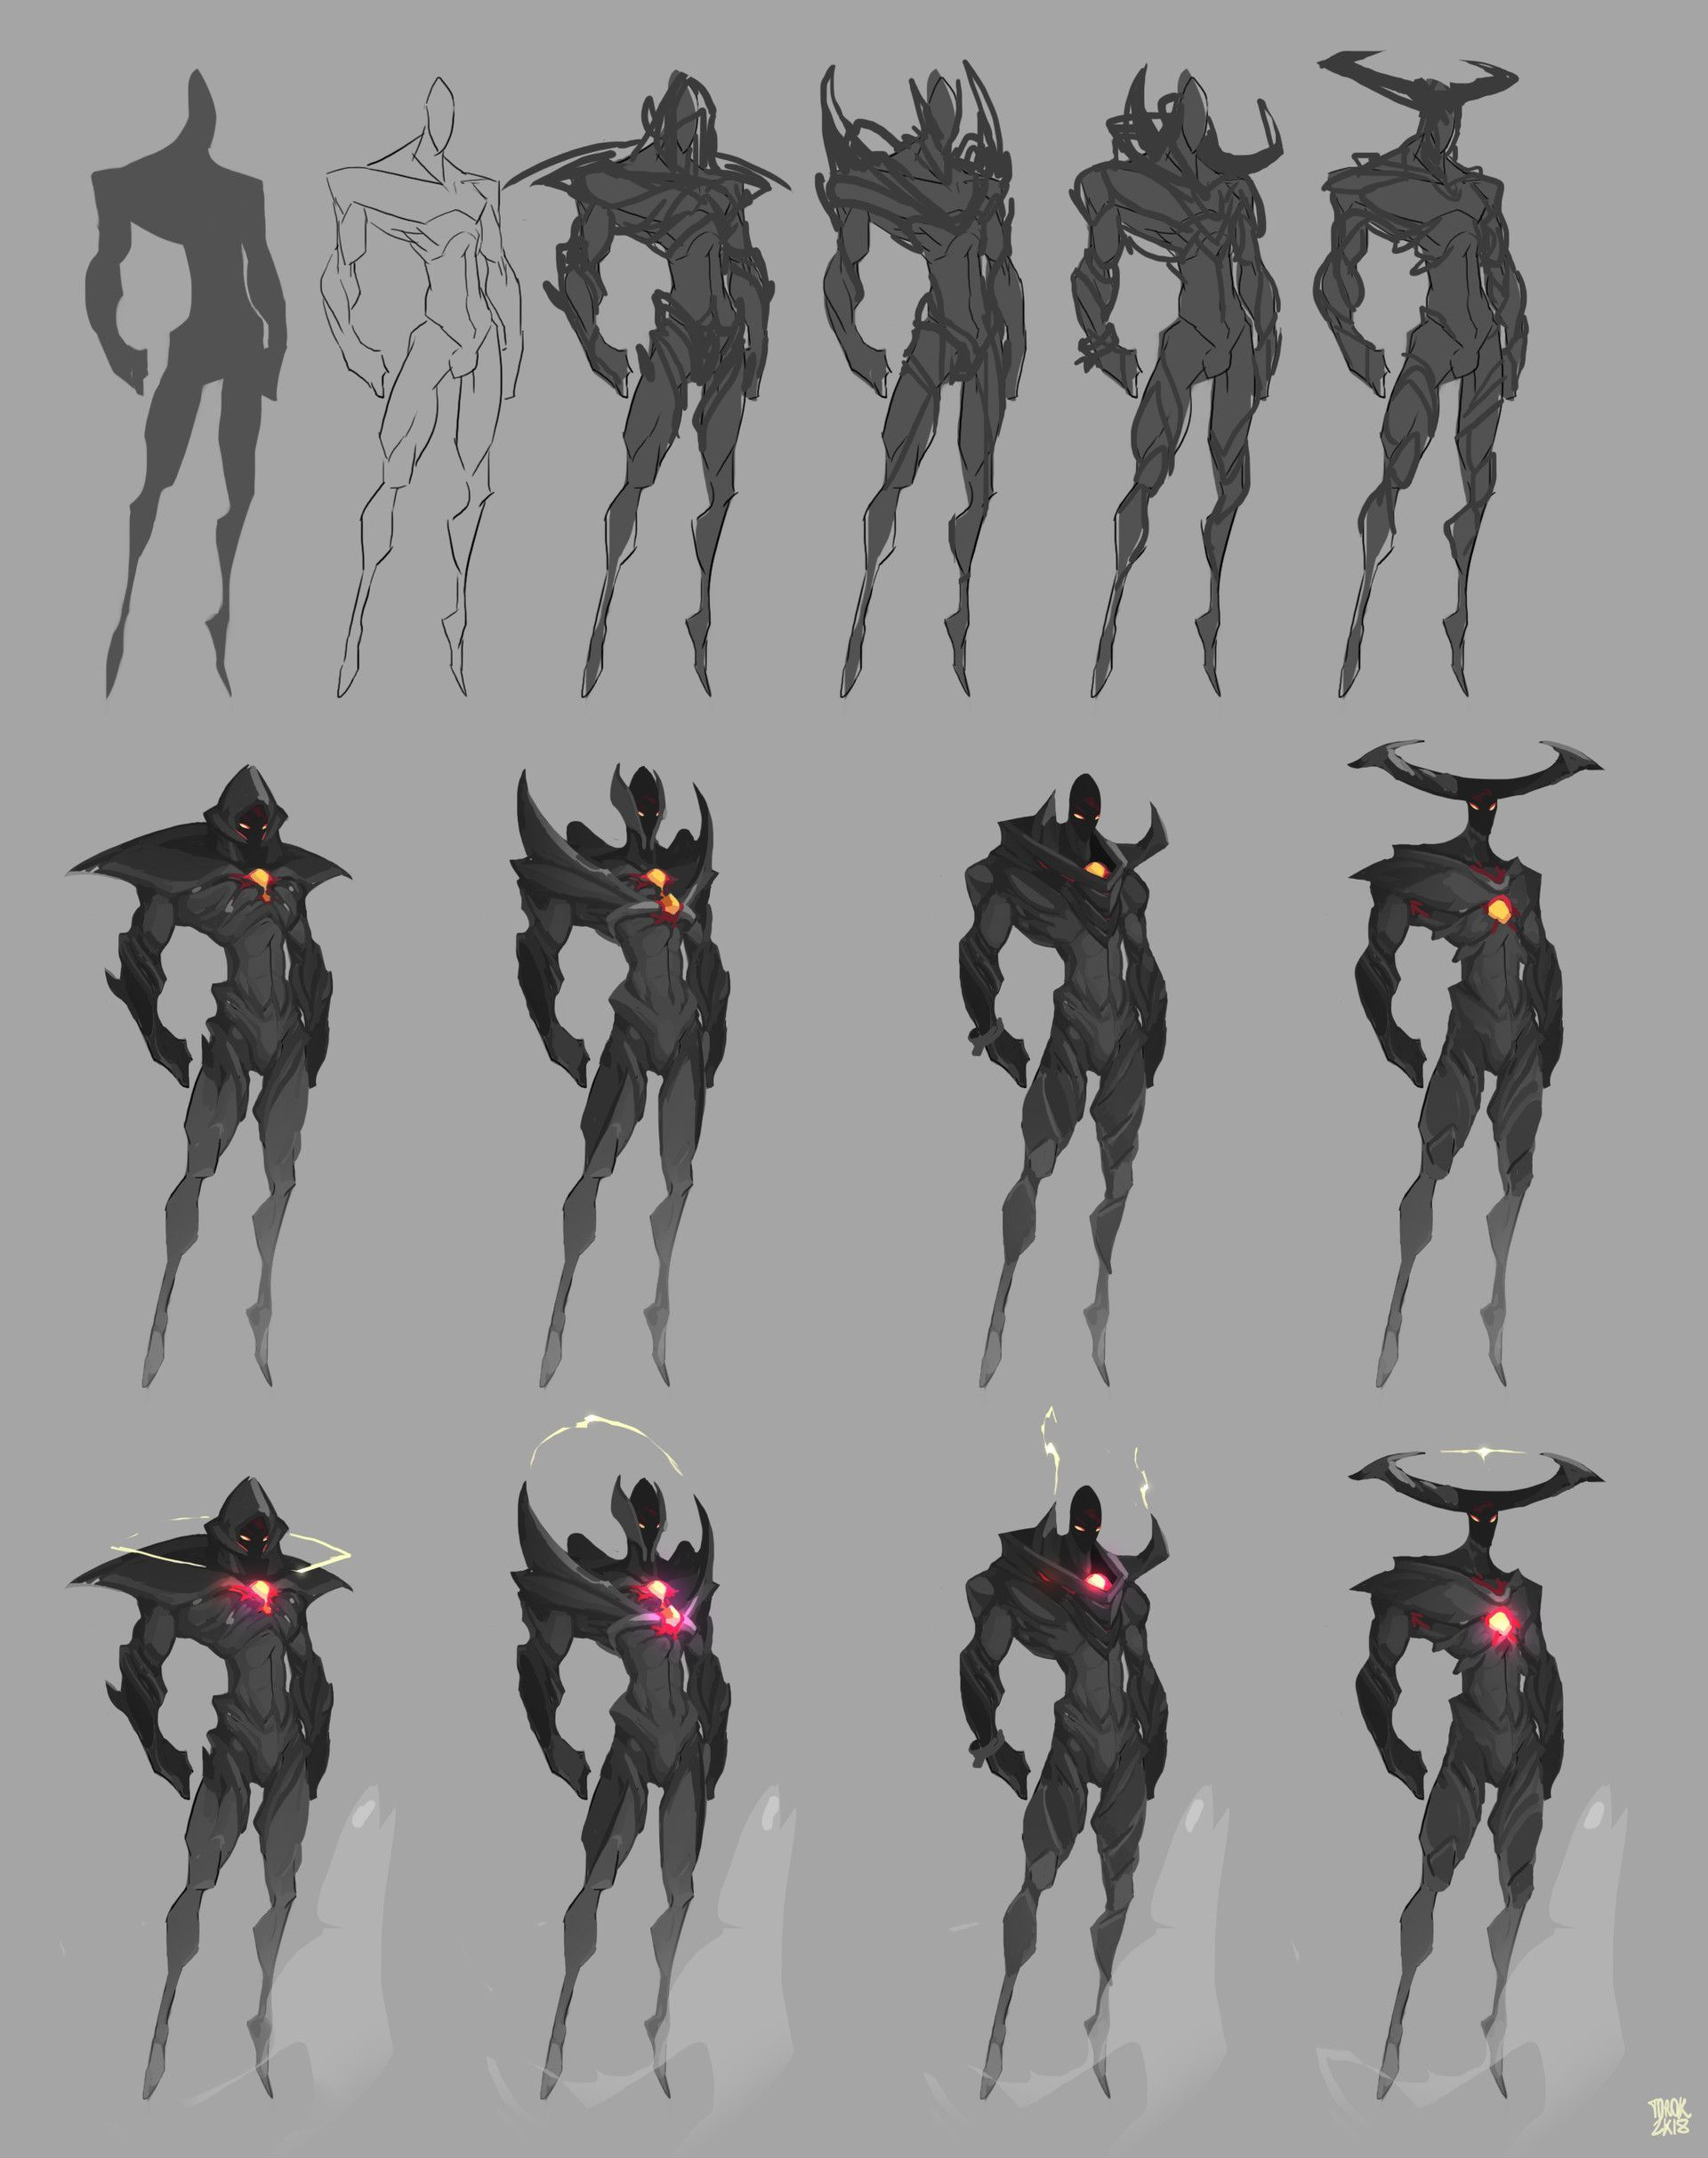 2020 Best Character Concept Godsmos Character Concept Theo D Hoop Artstation Godsmos In 2020 Concept Art Characters Creature Concept Art Game Character Design,Stars Beautiful Tattoo Designs For Girls